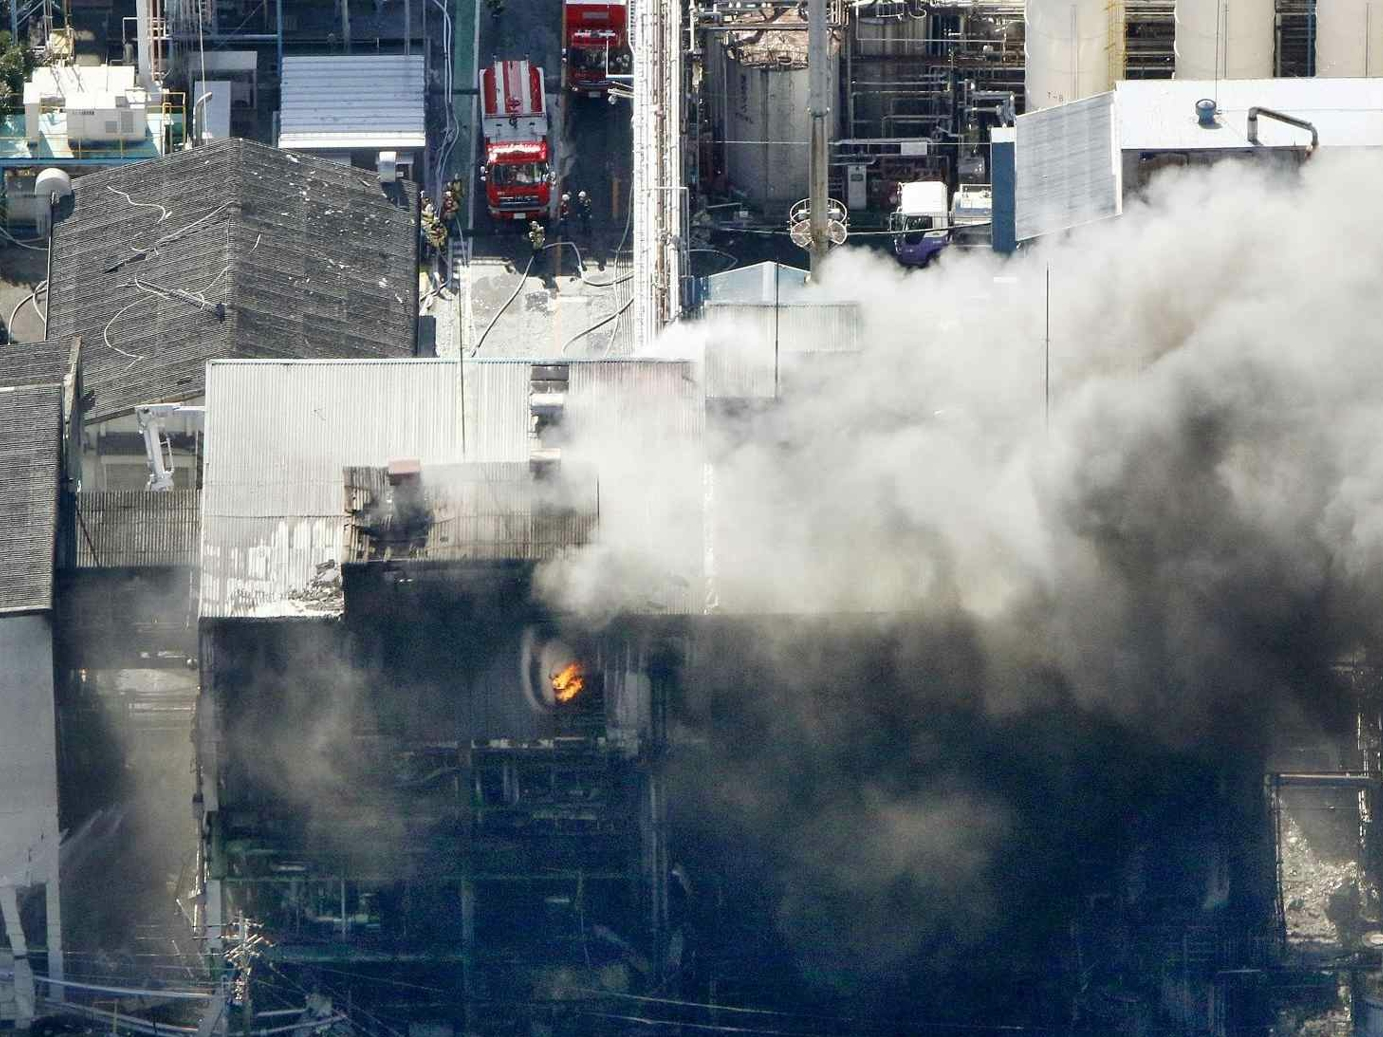 Explosion at chemical plant in west Japan kills 1, injures 10